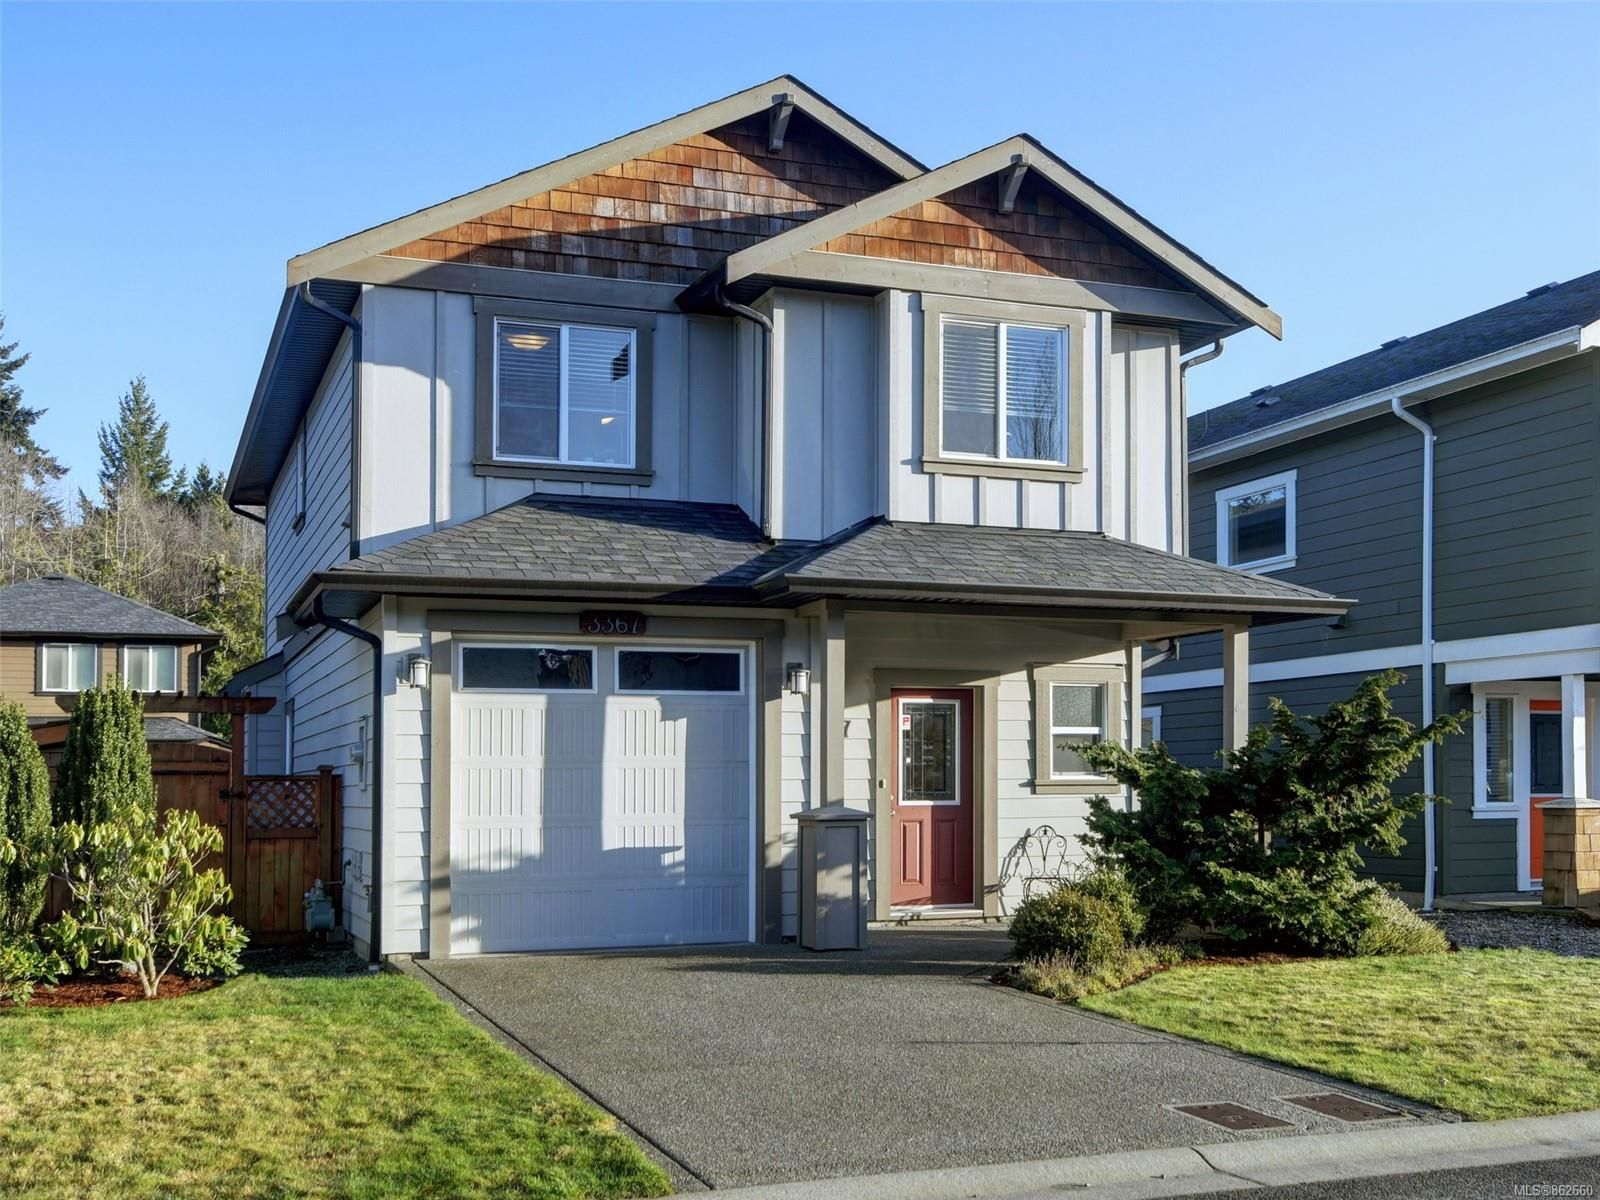 Main Photo: 3367 Merlin Rd in : La Luxton House for sale (Langford)  : MLS®# 862660